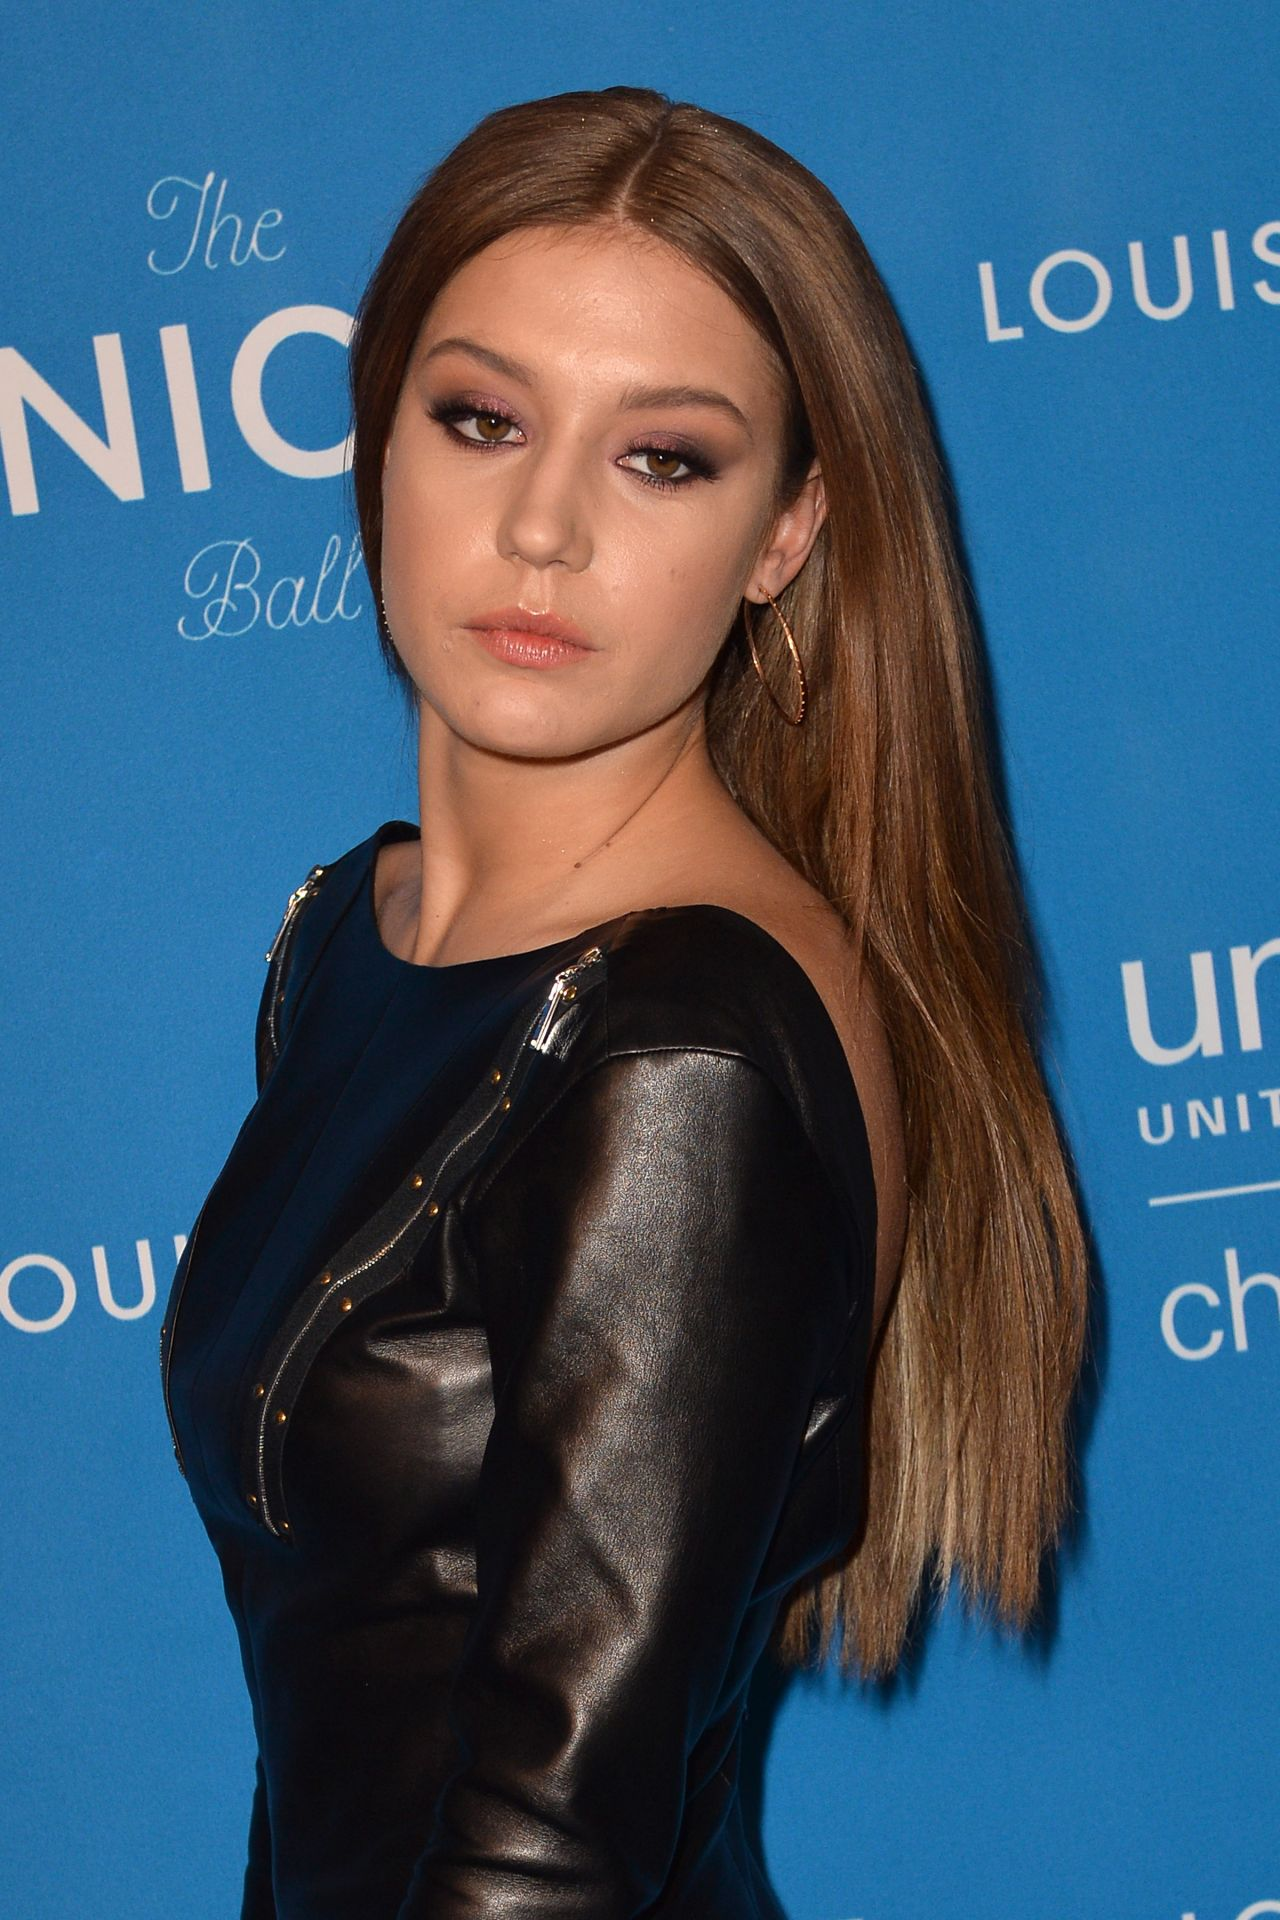 adèle-exarchopoulos-6th-biennial-unicef-ball-in-beverly-hills-1-12-2016-4